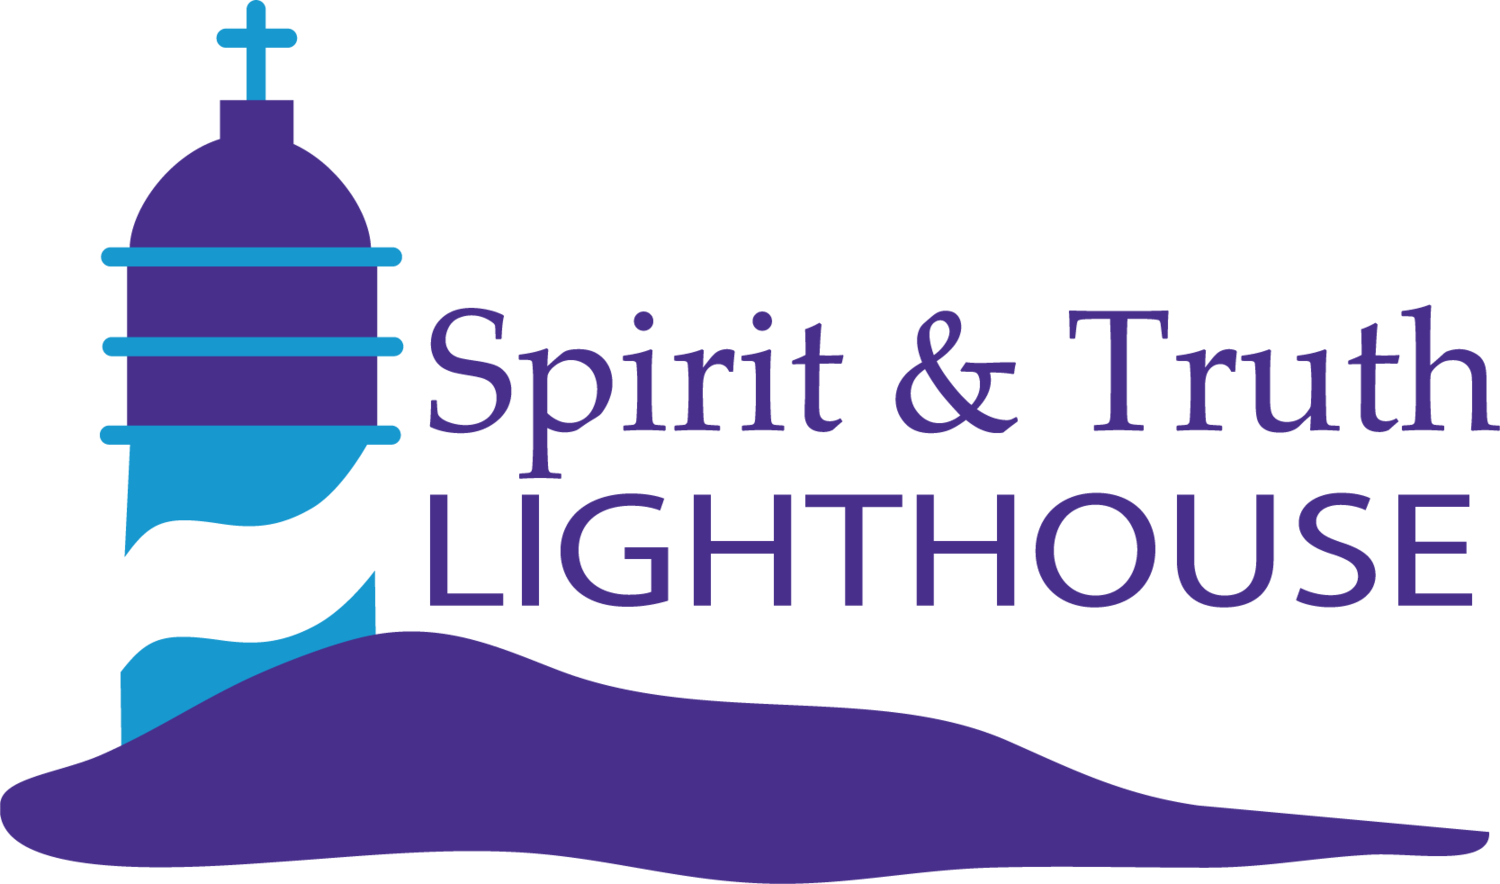 Spirit & Truth Lighthouse